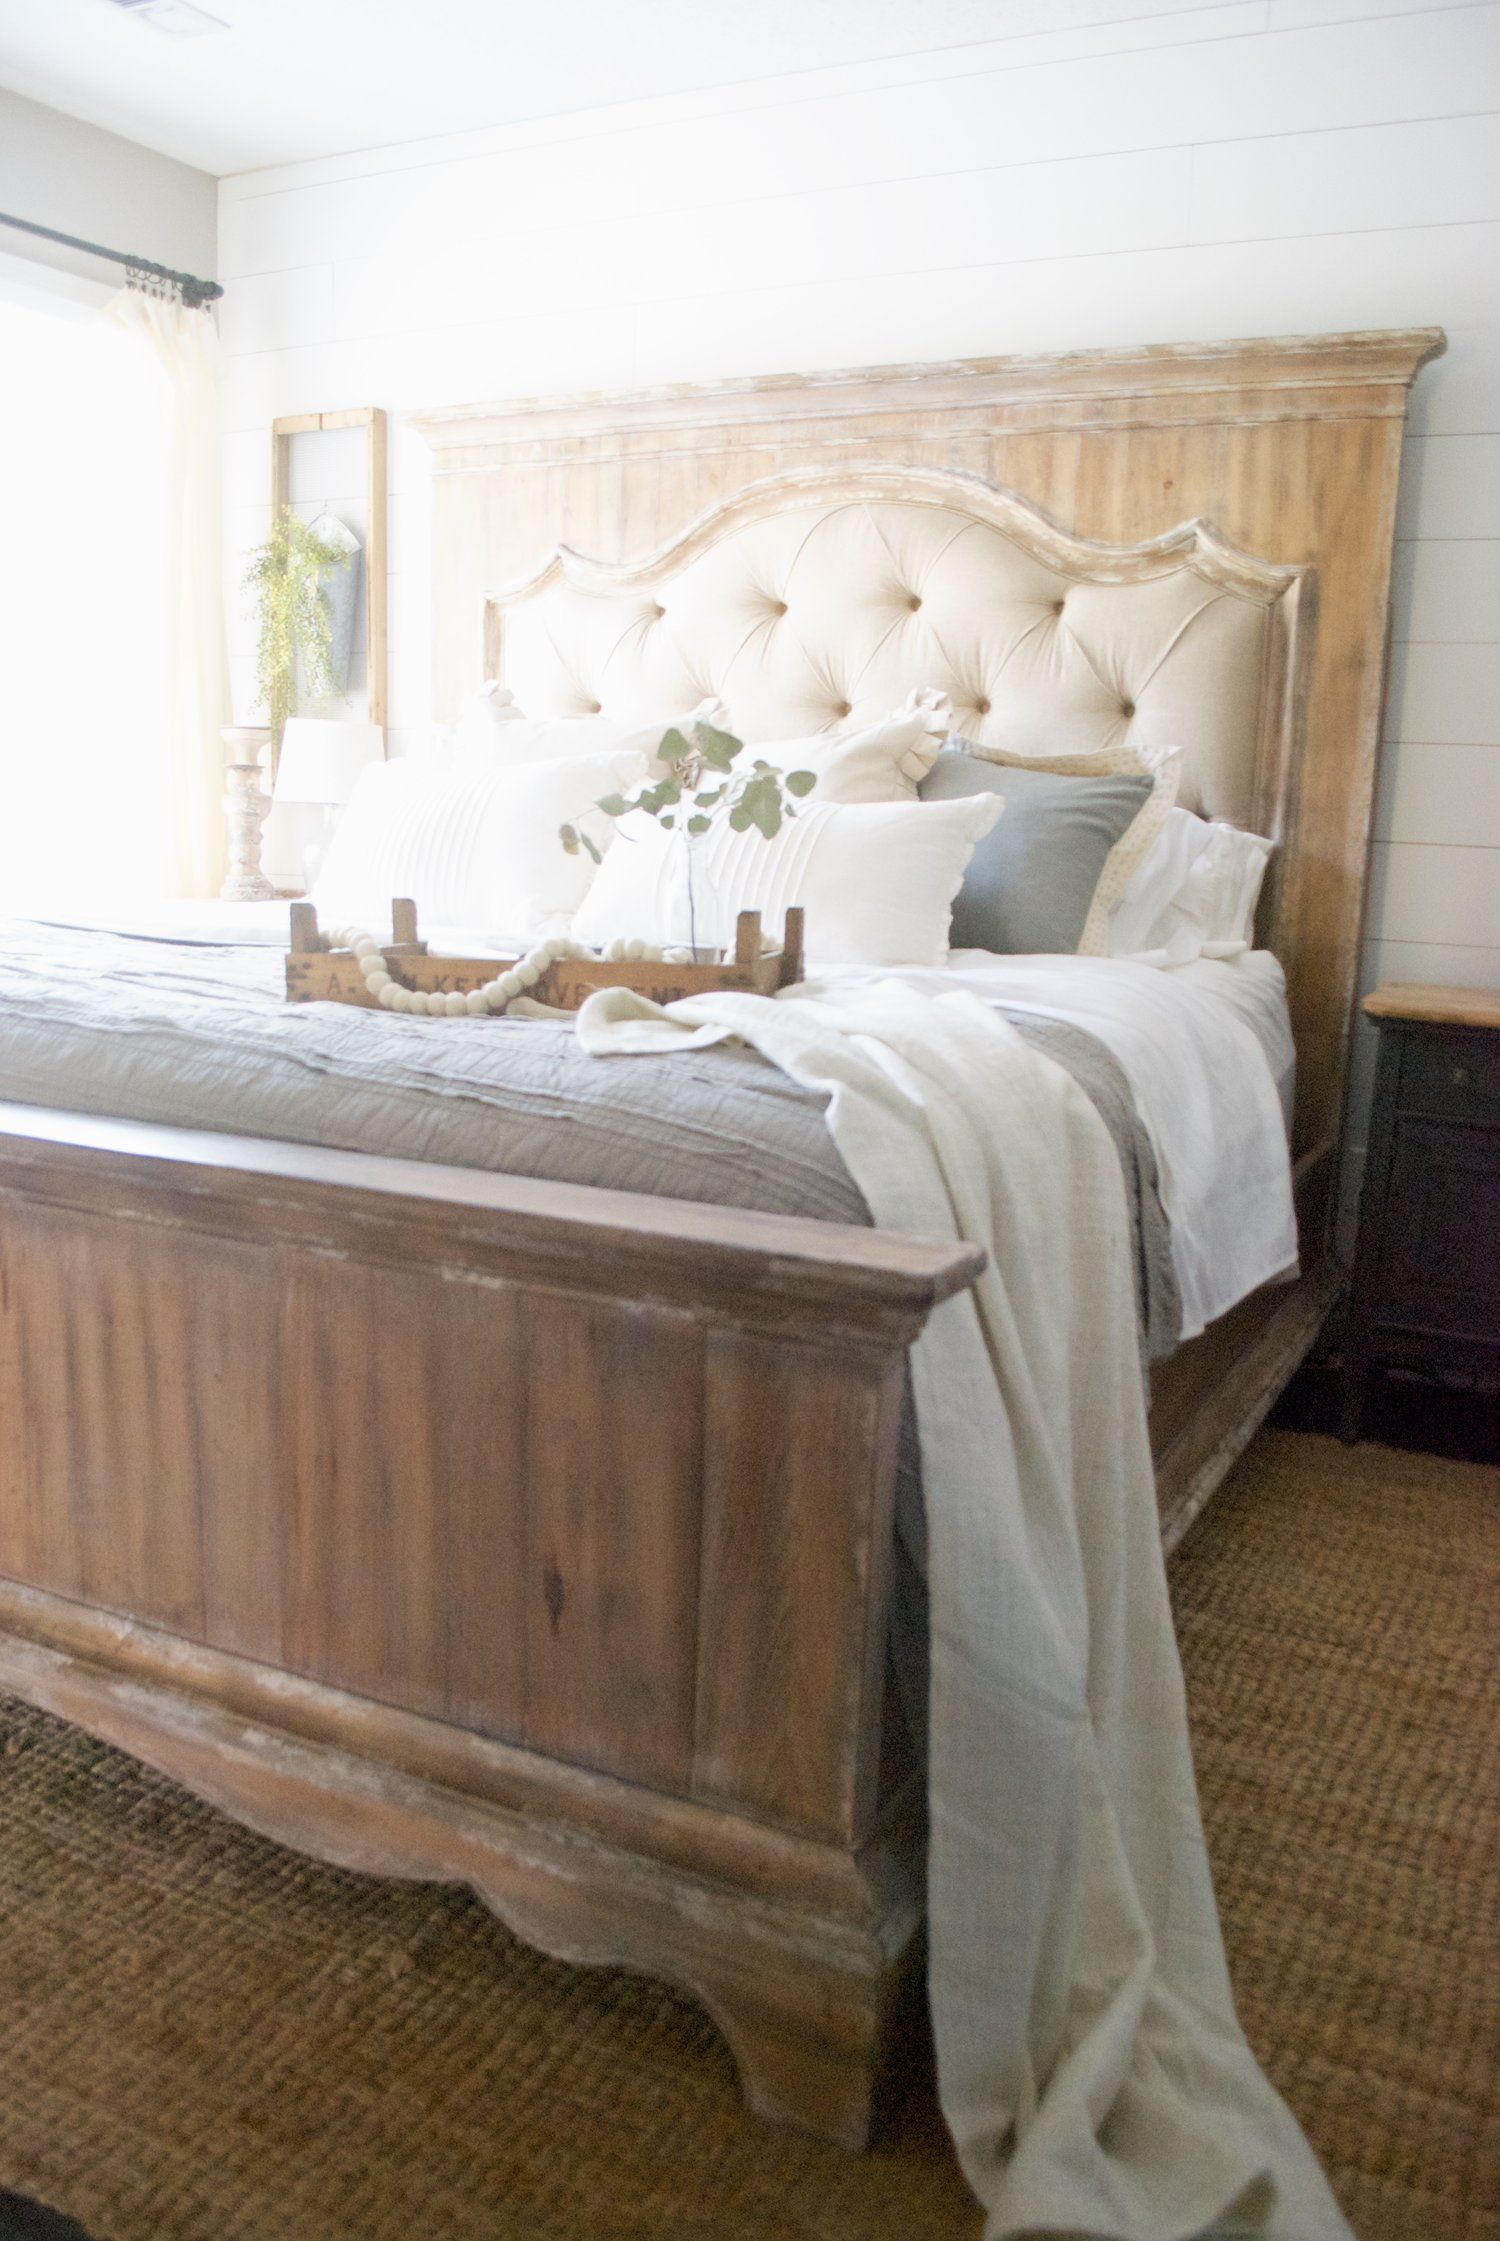 My French Country Farmhouse Style Bedhooker Furniture Fair Farmhouse Style Bedroom Decorating Design